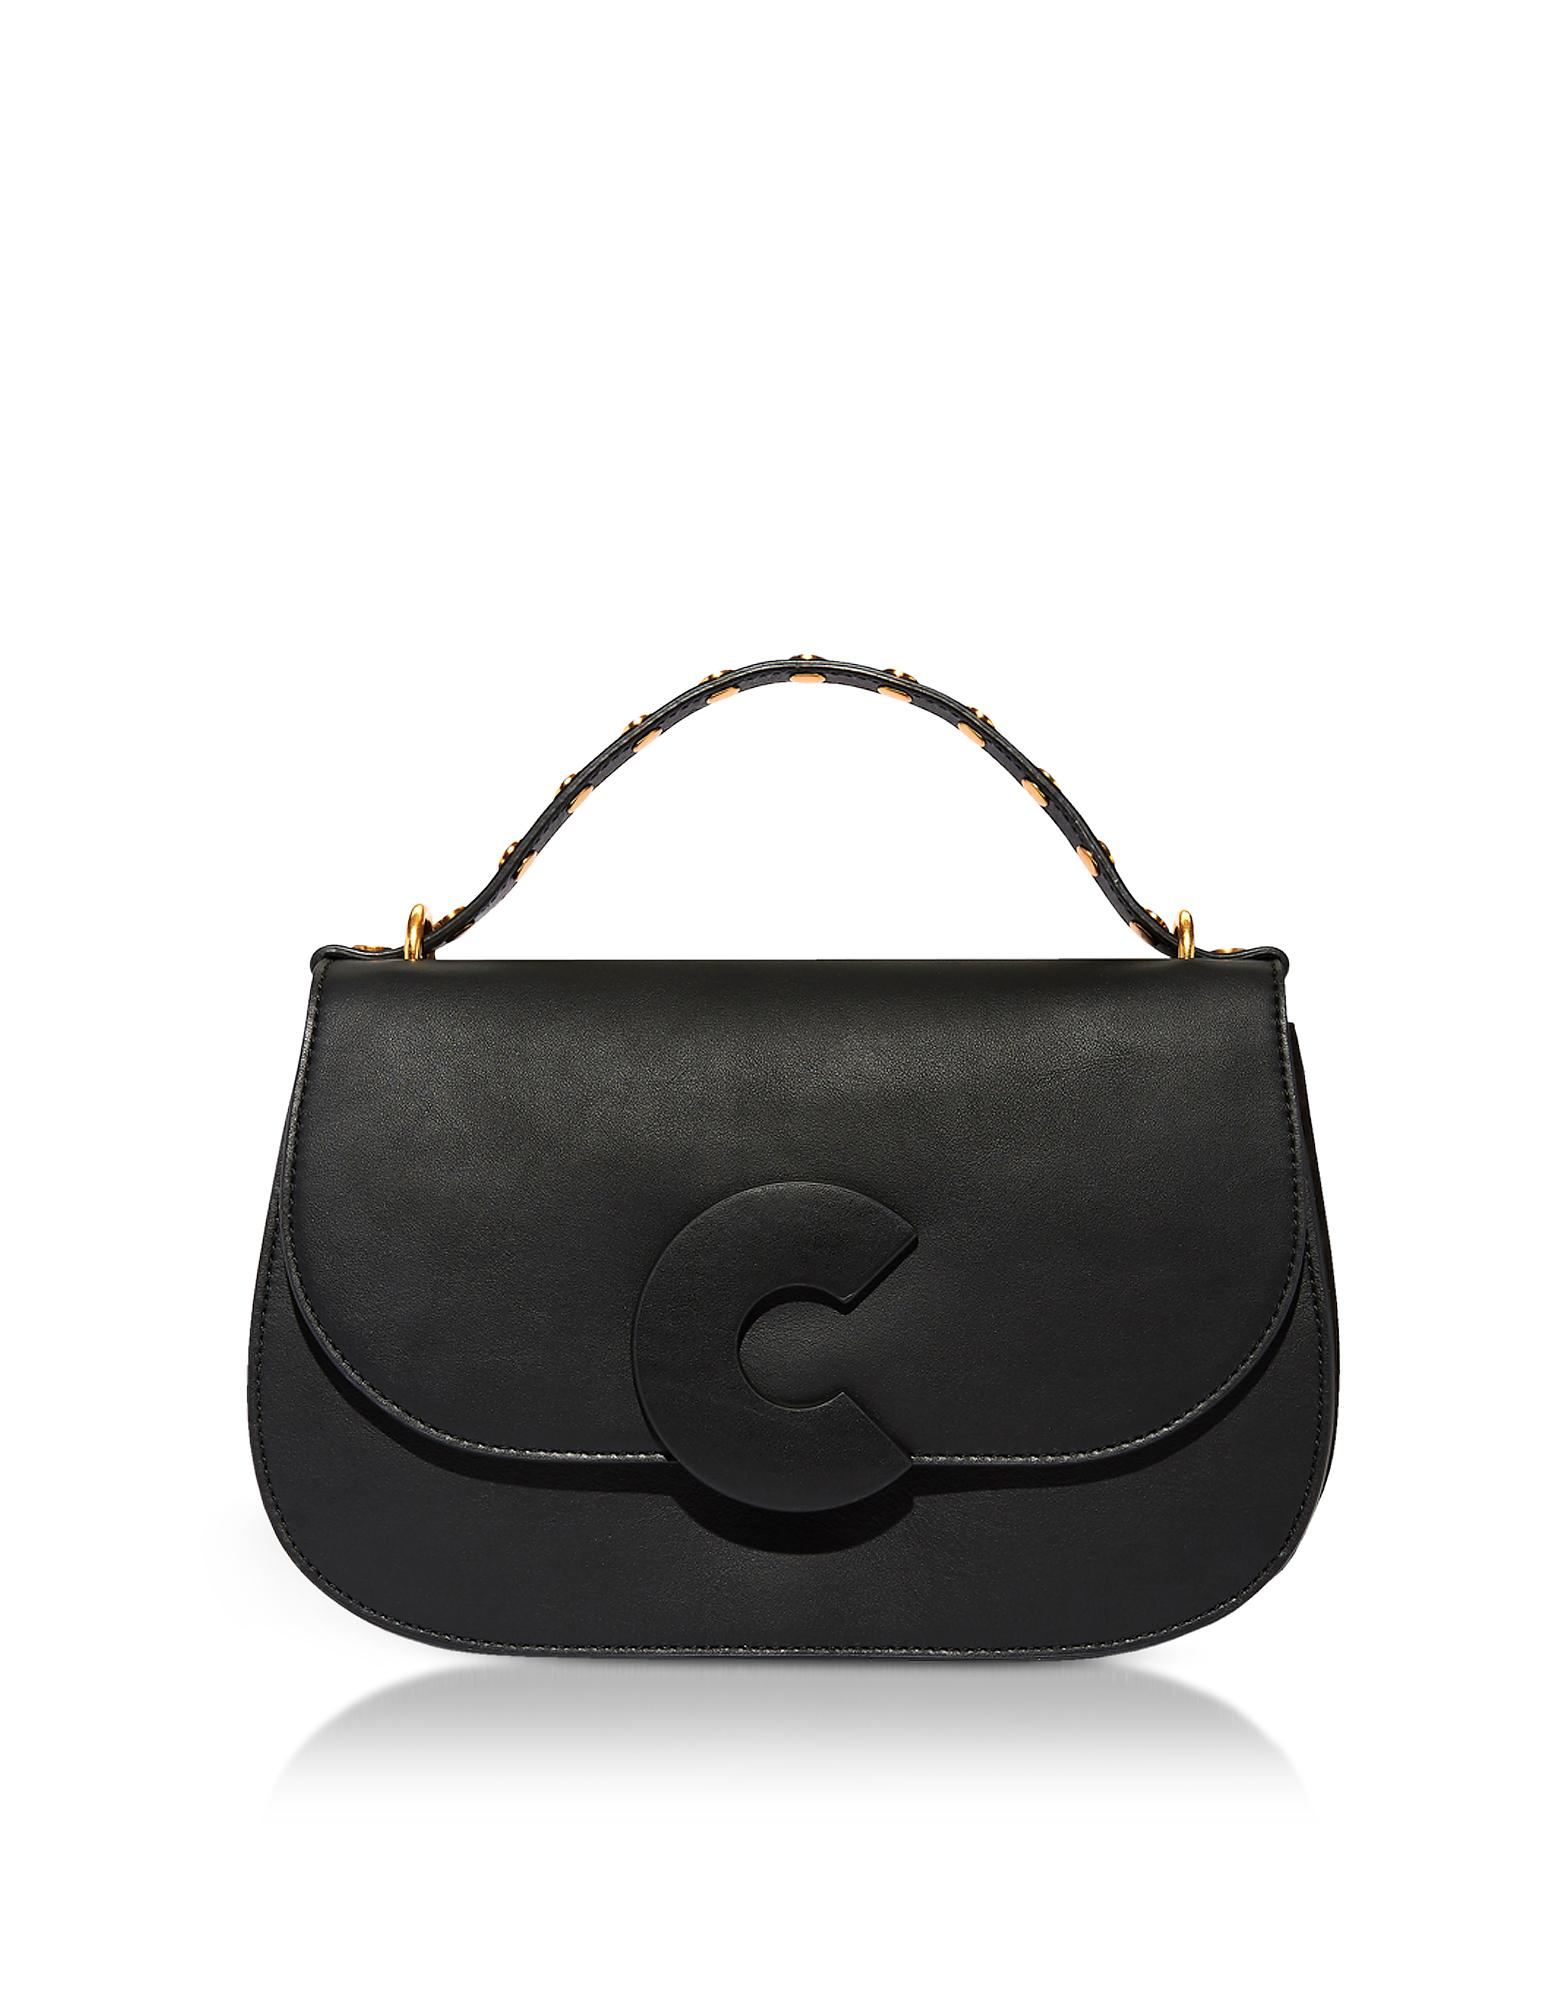 Coccinelle Handbags, Craquante Rock Leather and Suede Satchel Bag w/Studded Handle